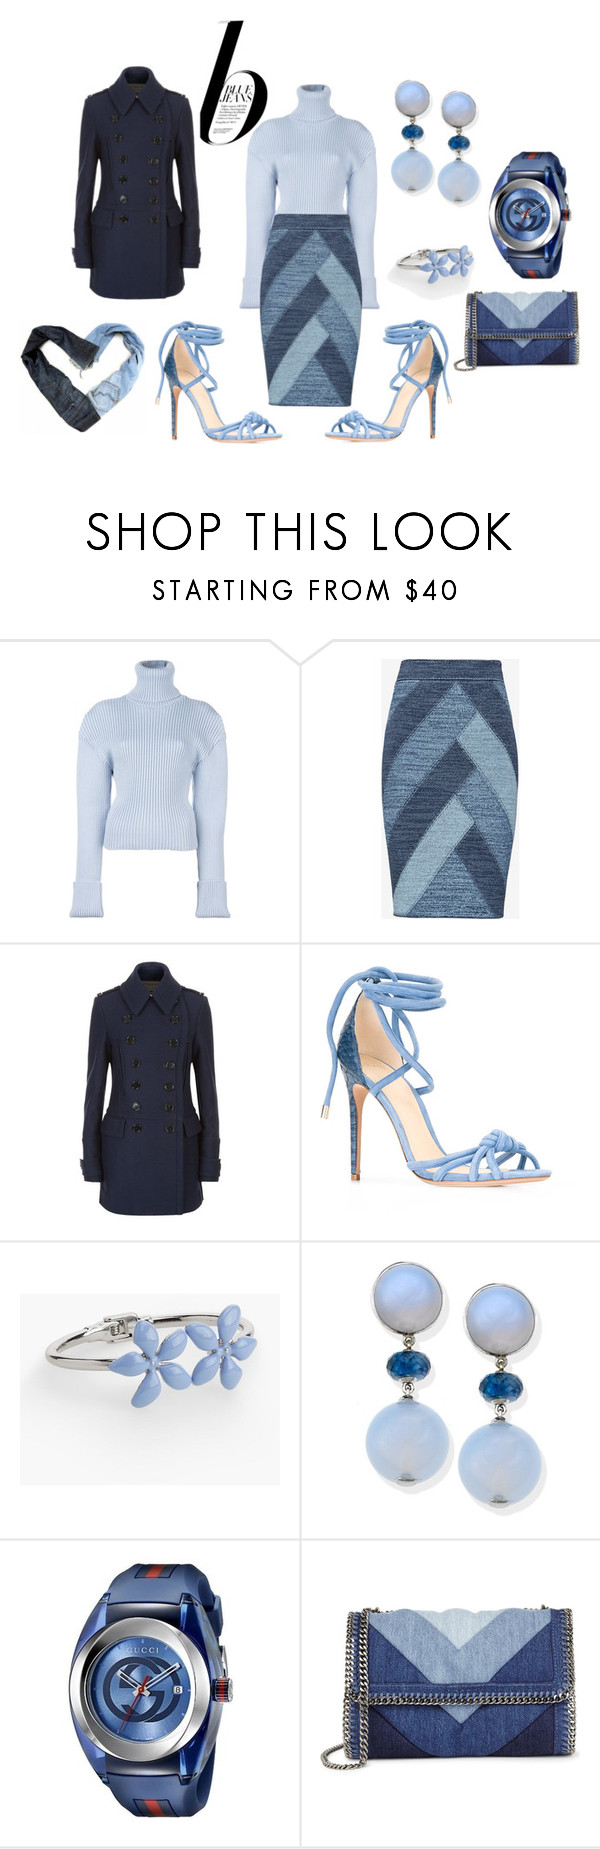 """""""jean look"""" by deirdre35 on Polyvore featuring Nico, Jacquemus, BCBGMAXAZRIA, Burberry, Alexandre Birman, Talbots, Gucci, STELLA McCARTNEY and Therapy"""